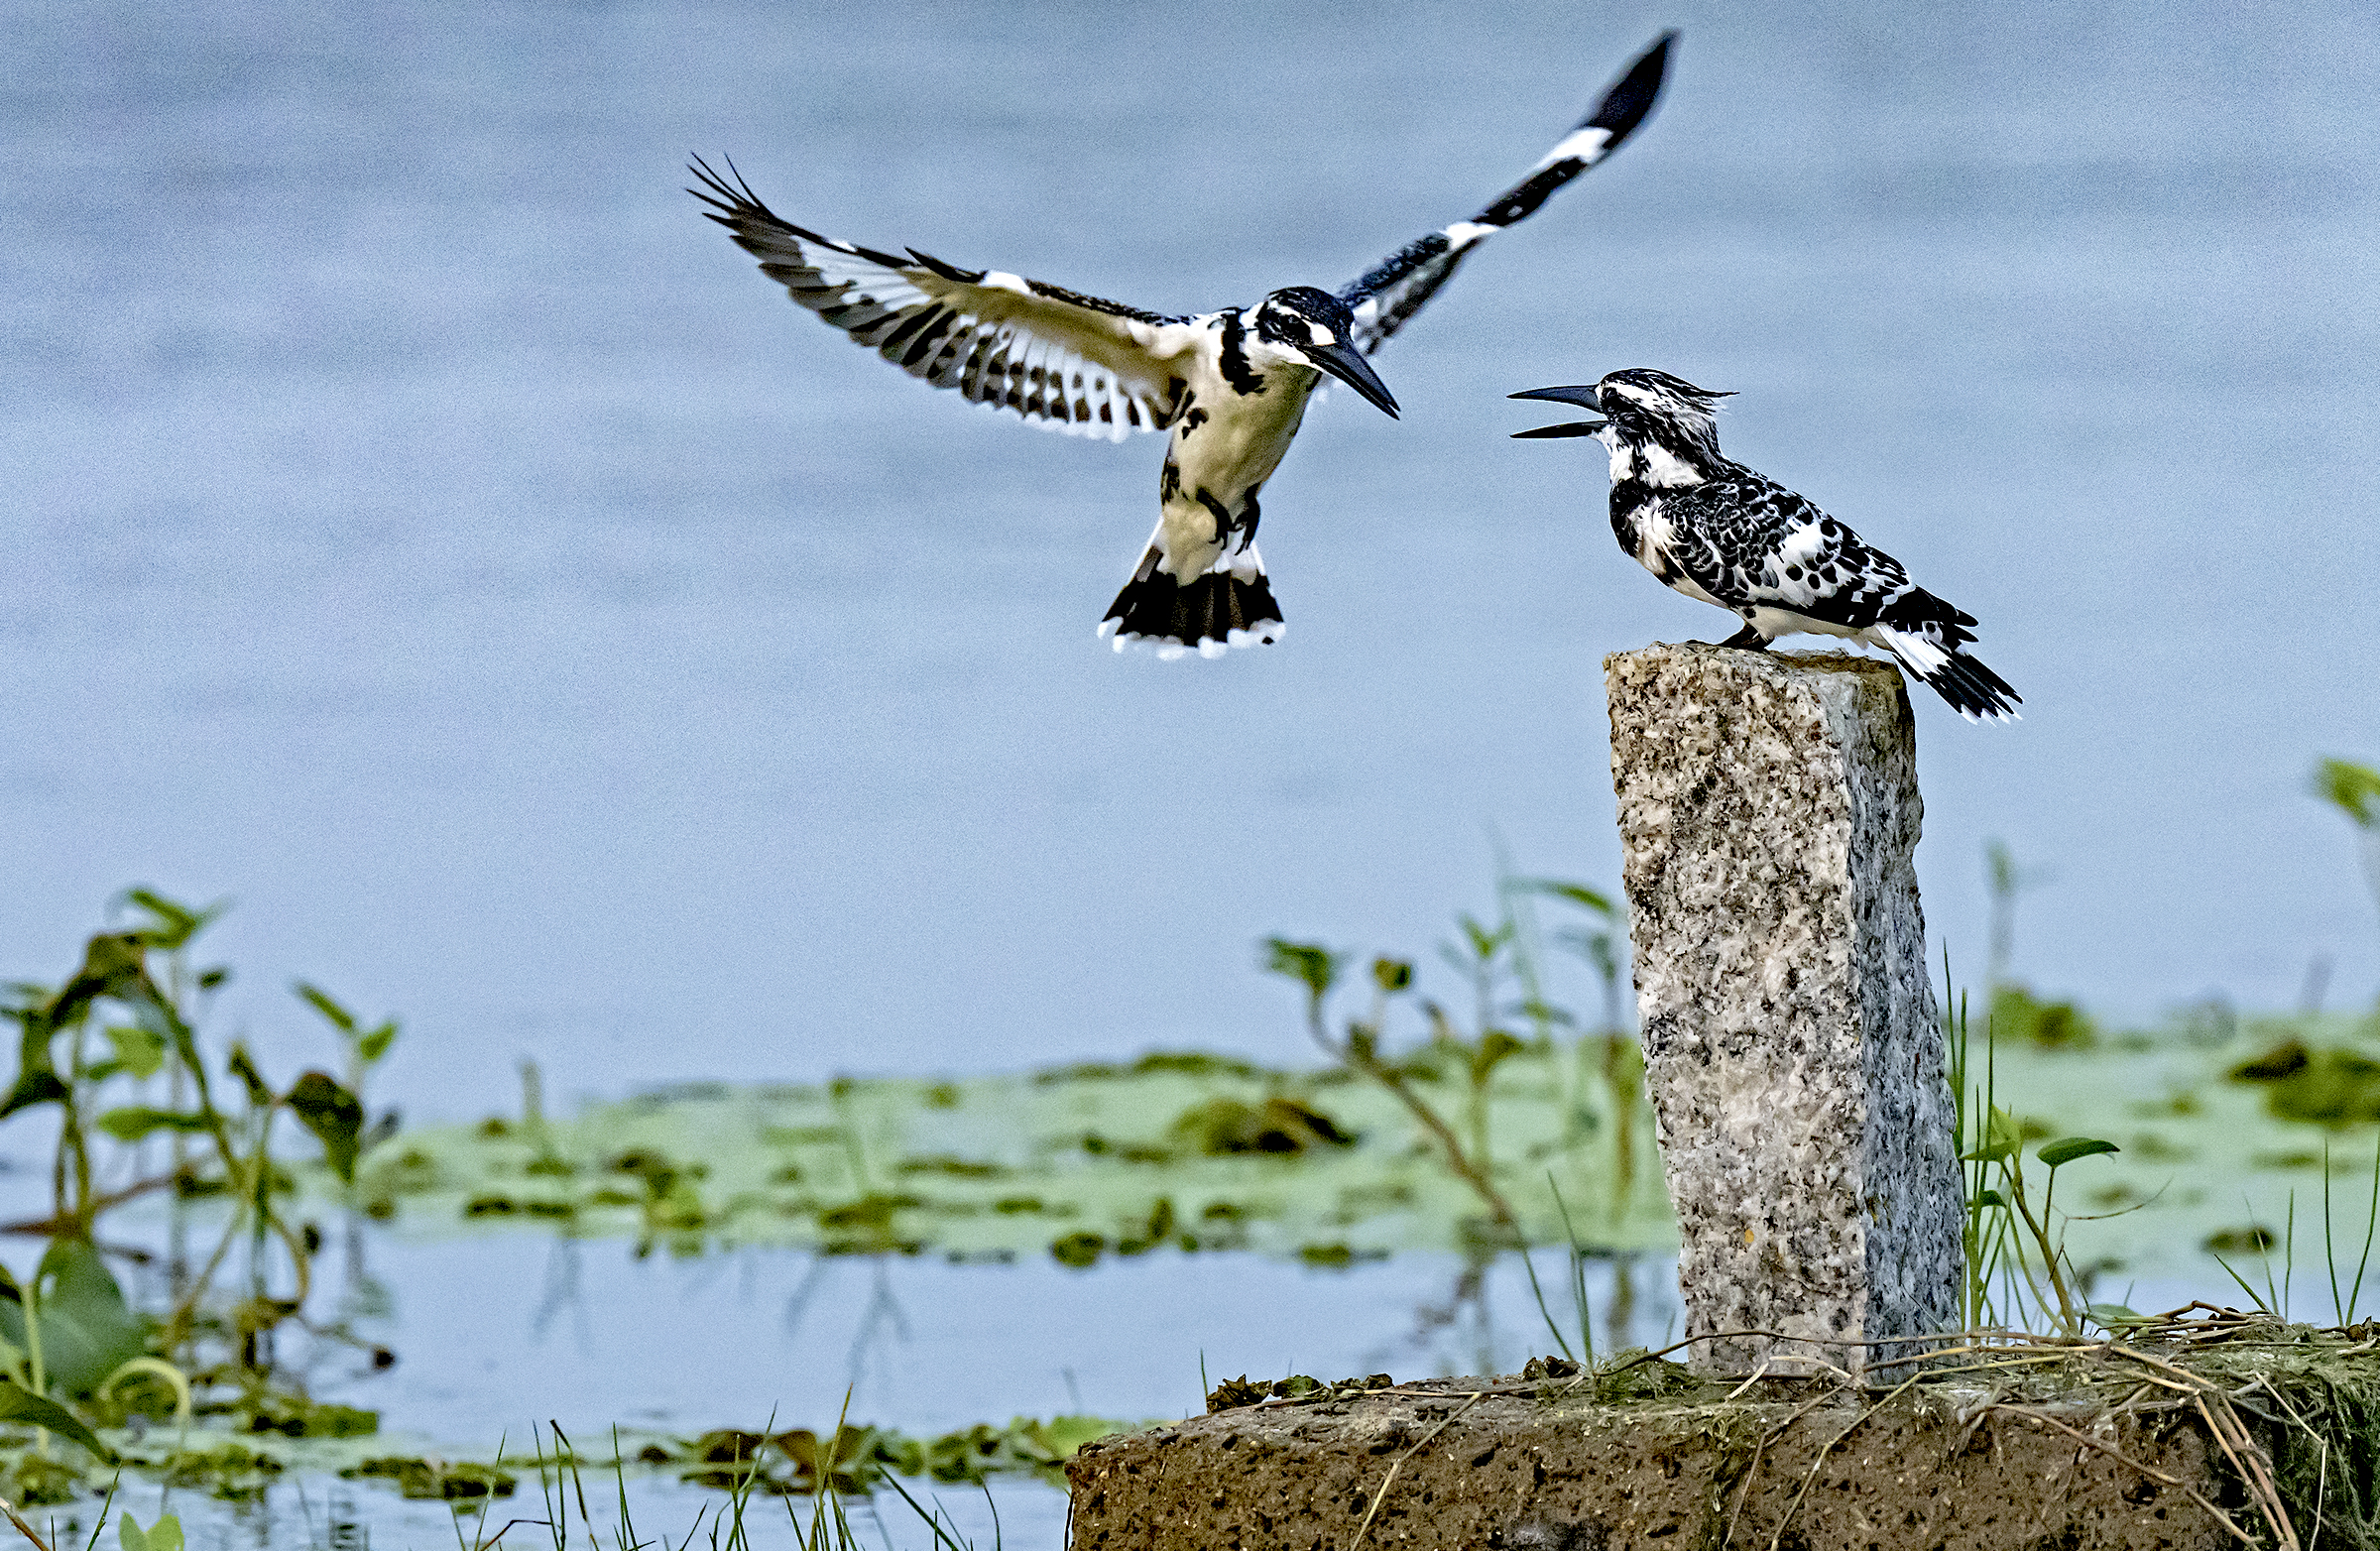 An adult pied kingfisher prepares to land next to its nearly fully grown offspring.